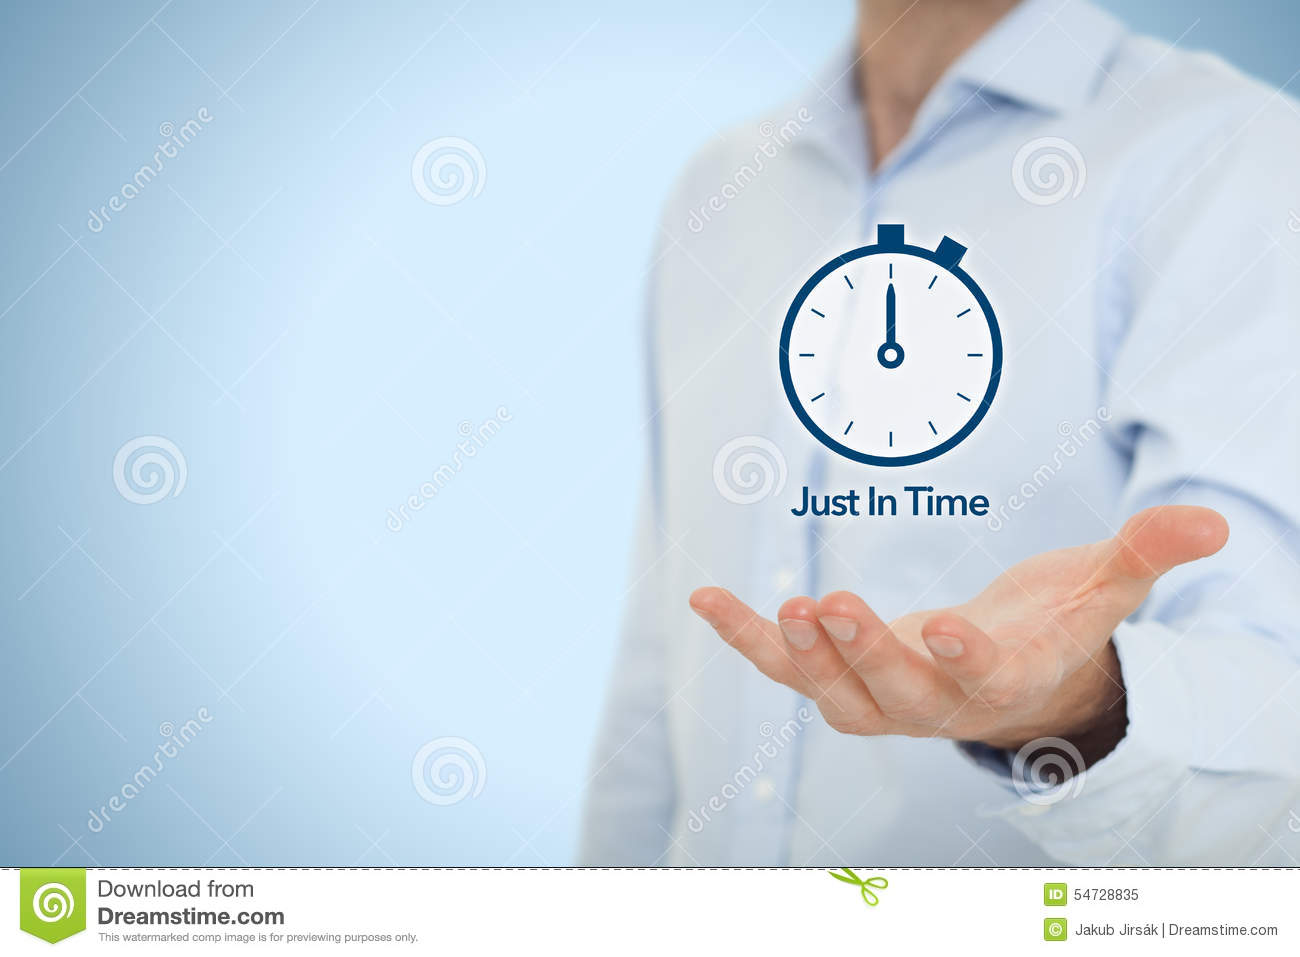 Just In Time JIT Stock Photo Image 54728835